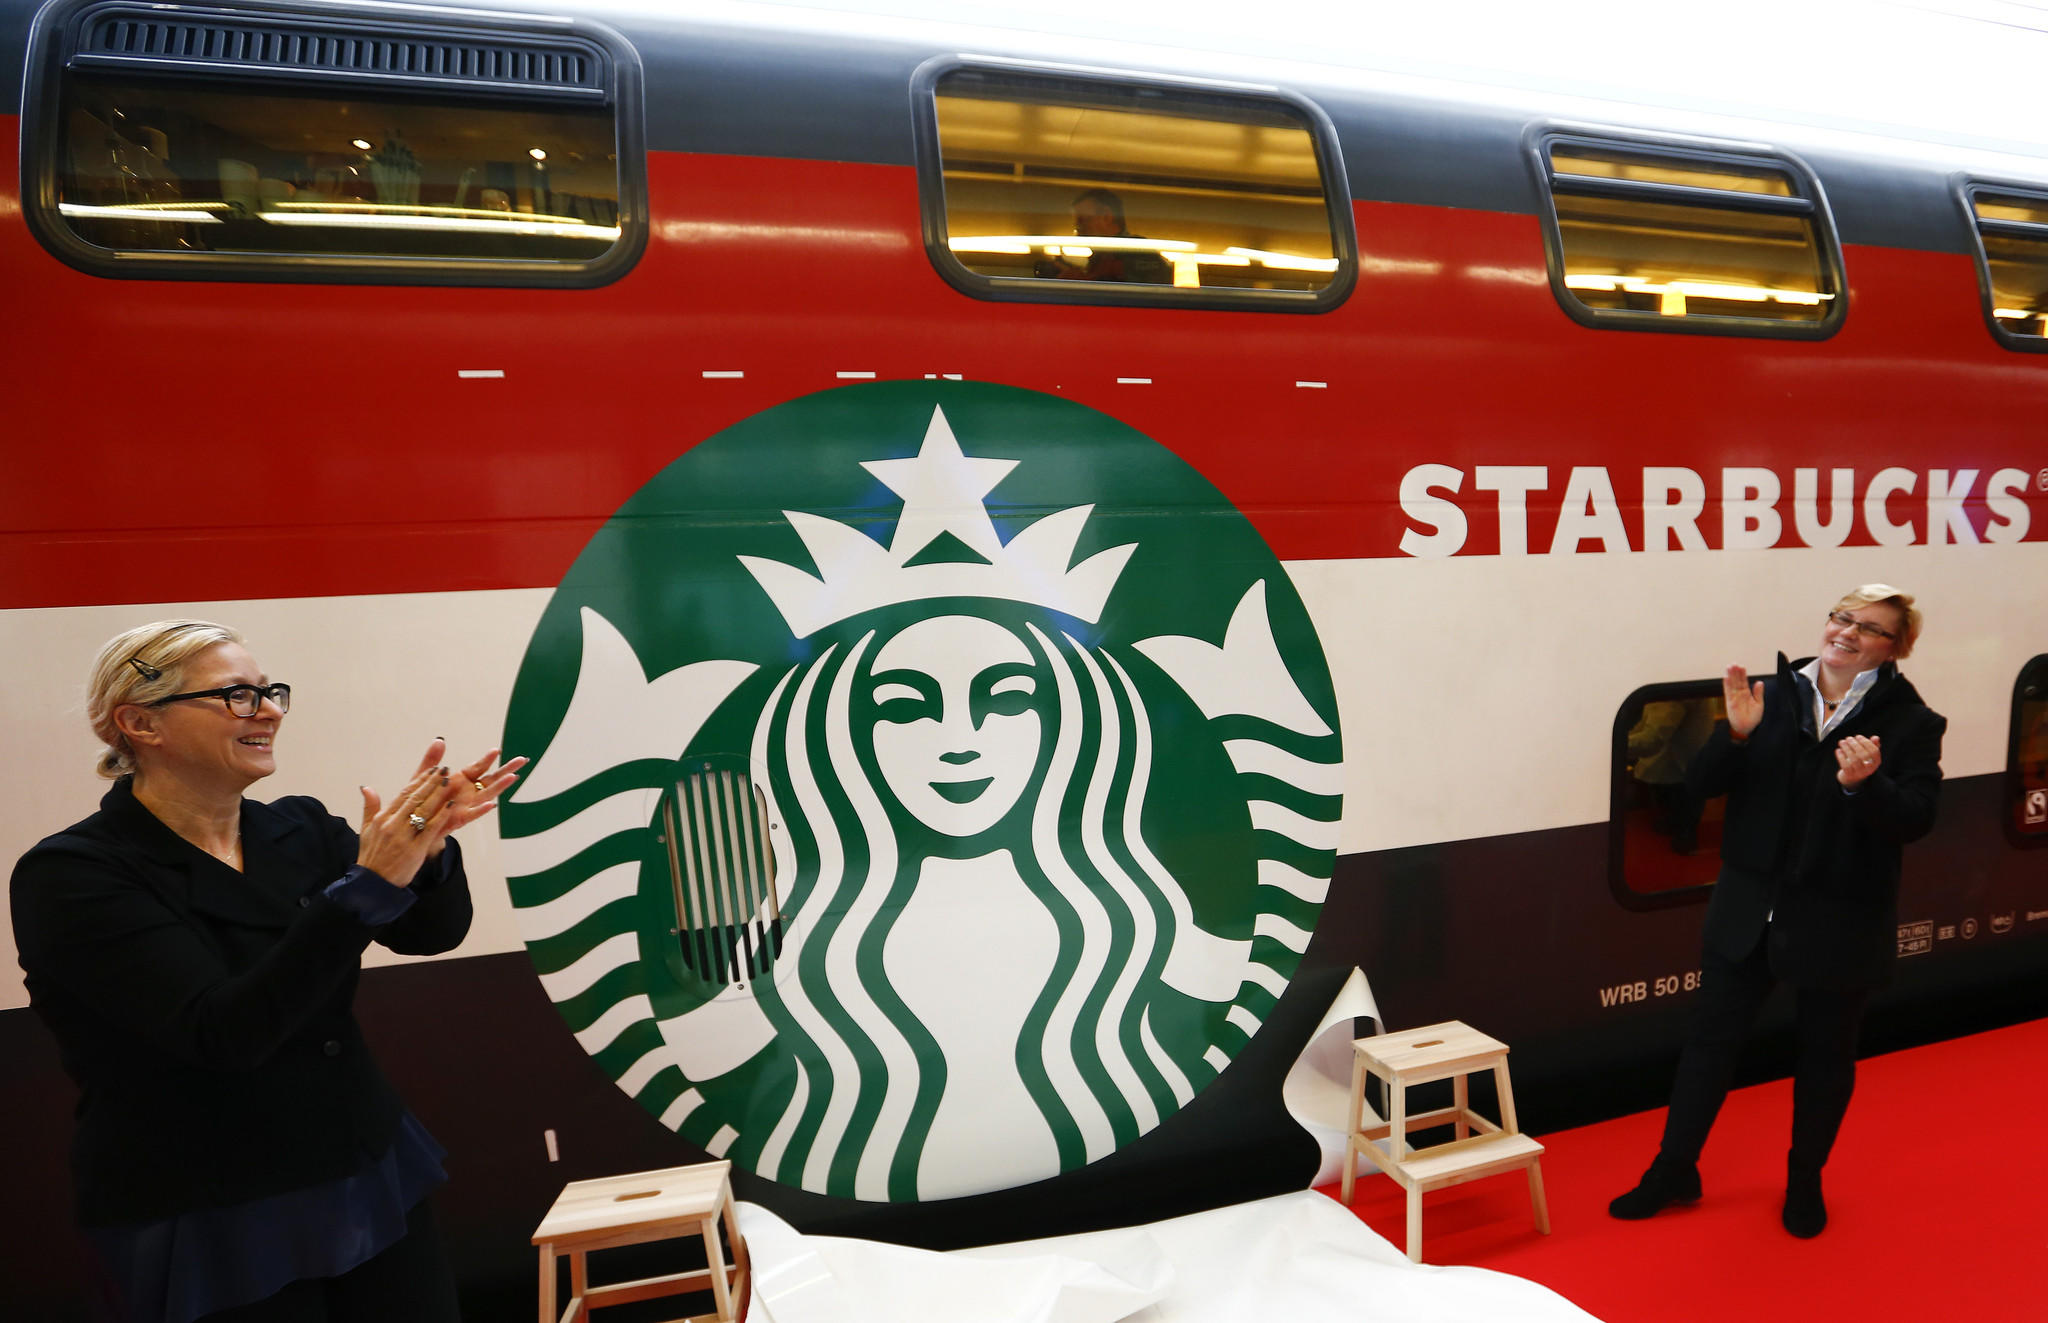 Jeannine Pilloud, head of passenger transportation of Swiss rail operator SBB and Liz Muller (R), director Global Concept Design Starbucks applaud after they unveiled the Starbucks logo painted on a railway coach at the main train station in Zurich November 14, 2013.